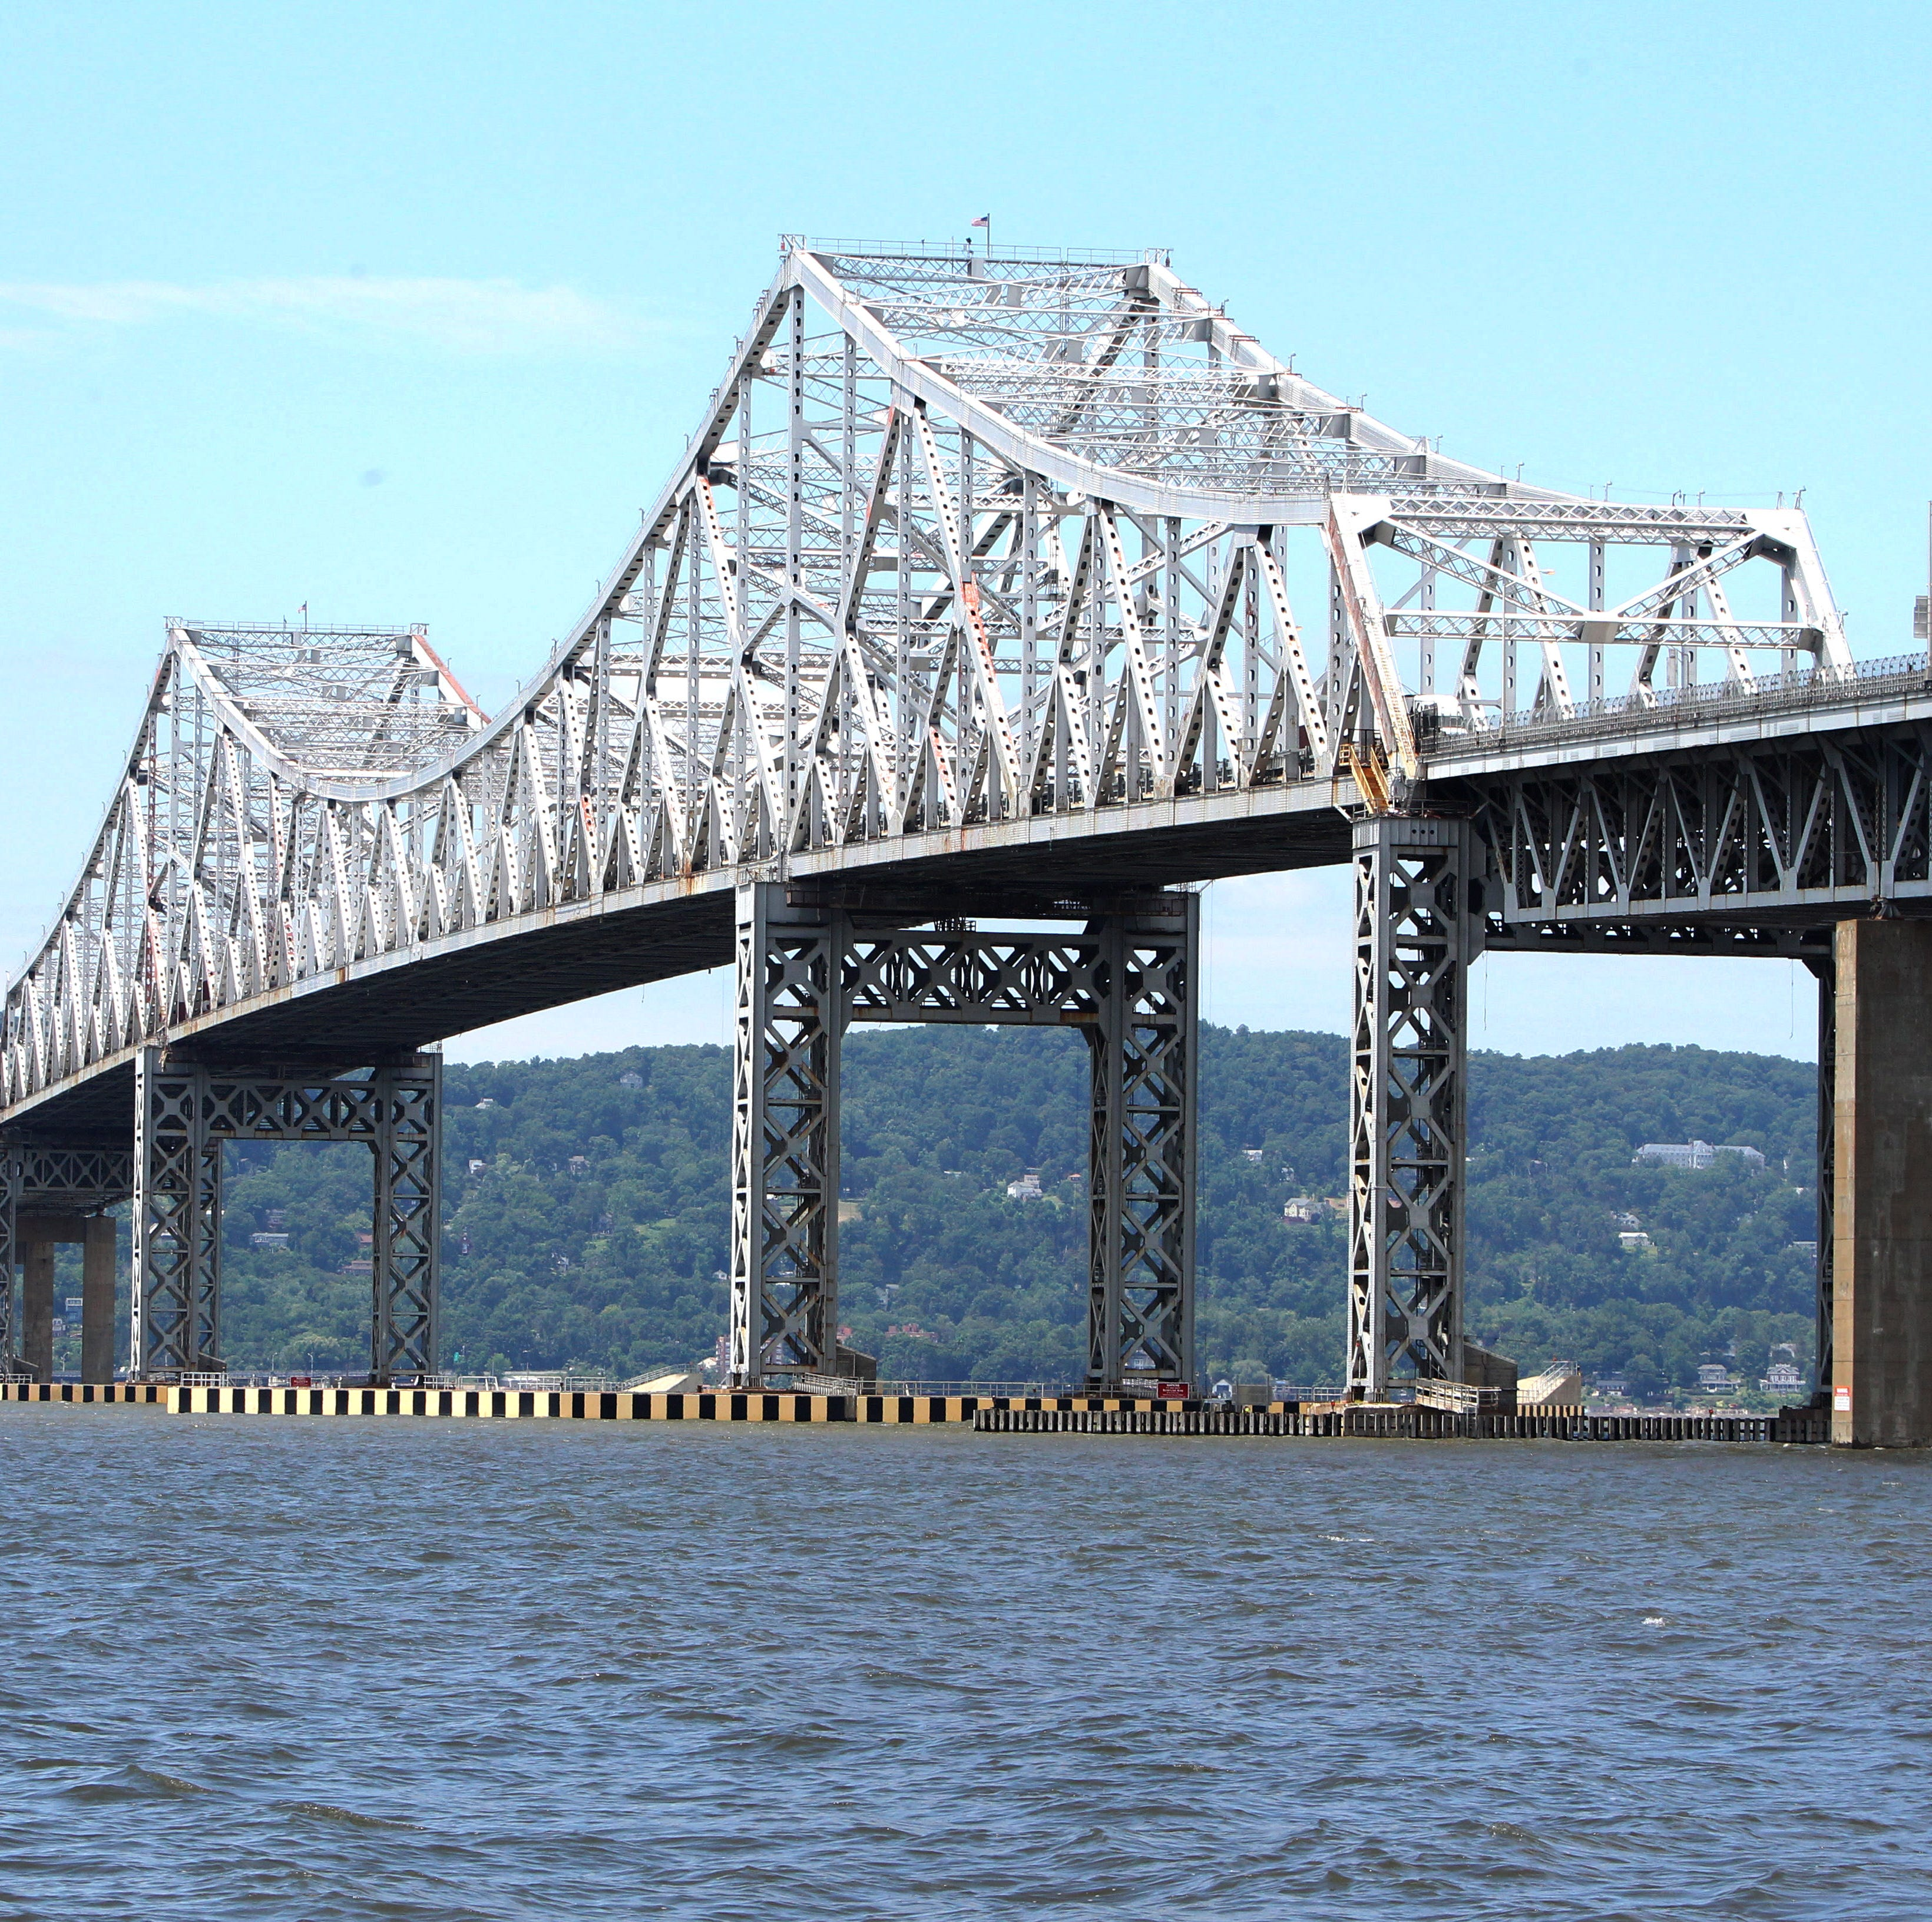 Reflections on a Tappan Zee crossing that always welcomed us home